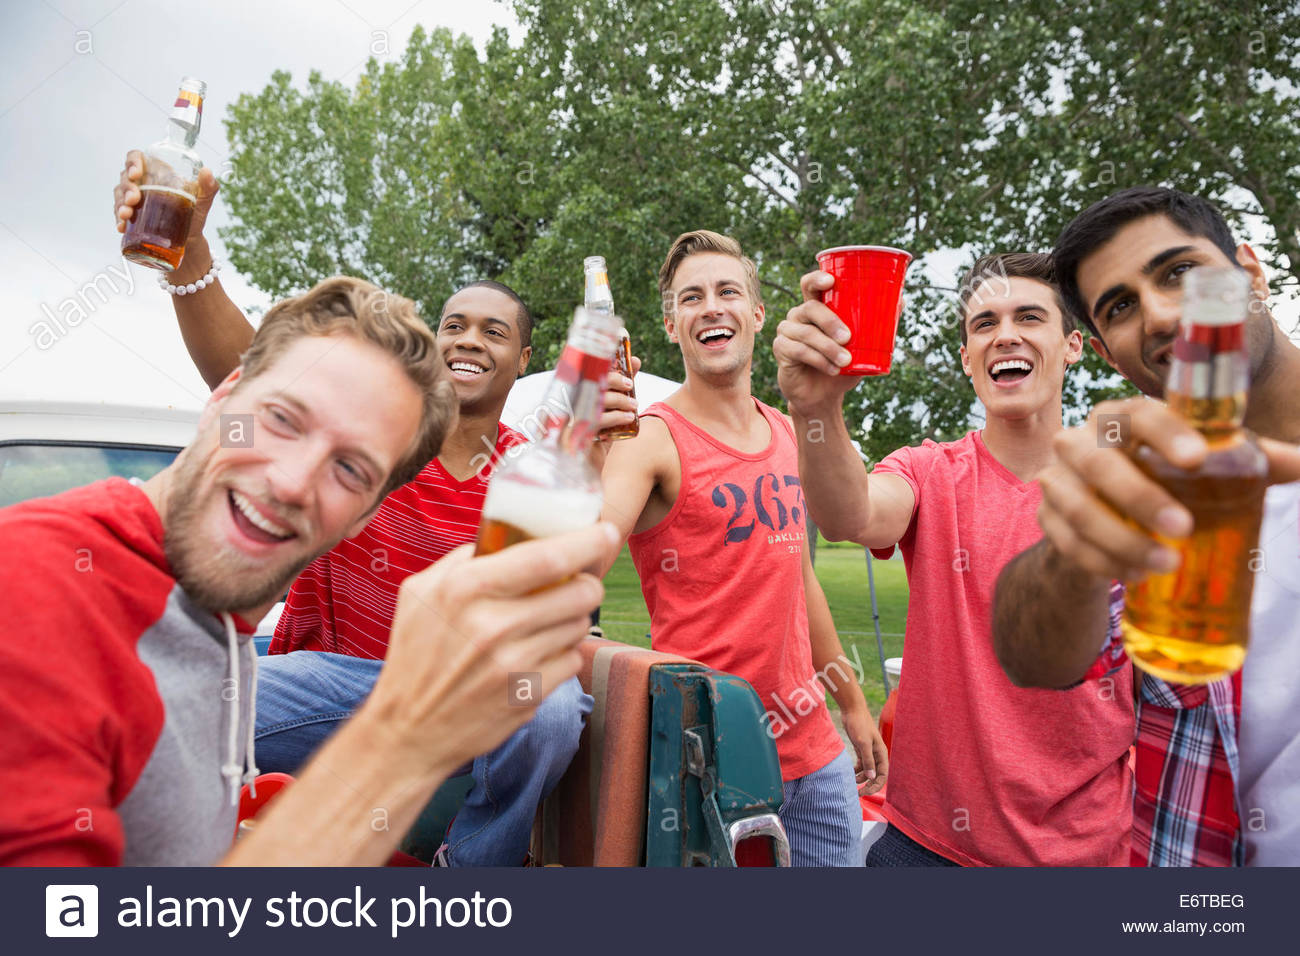 Men toasting each other at tailgate barbecue - Stock Image